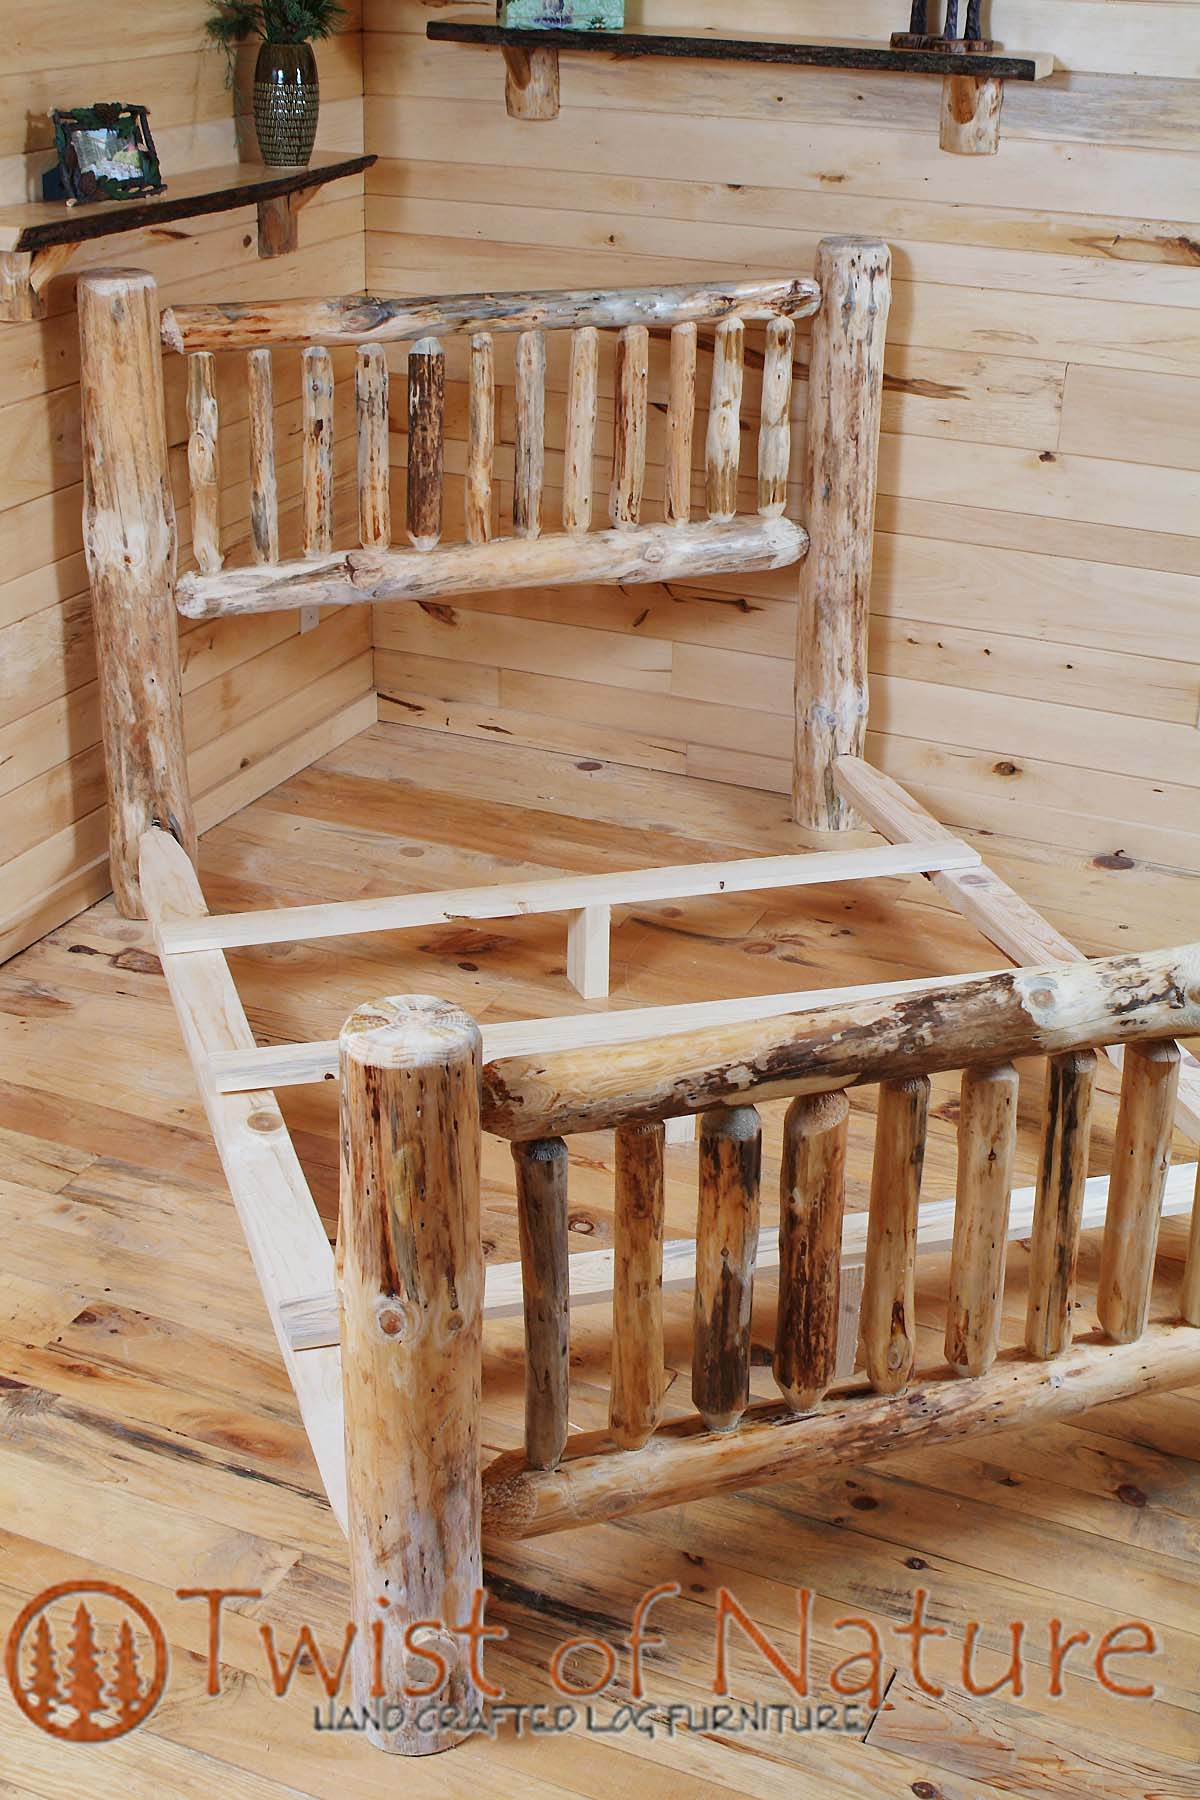 Standard Log Bed Frame Kit